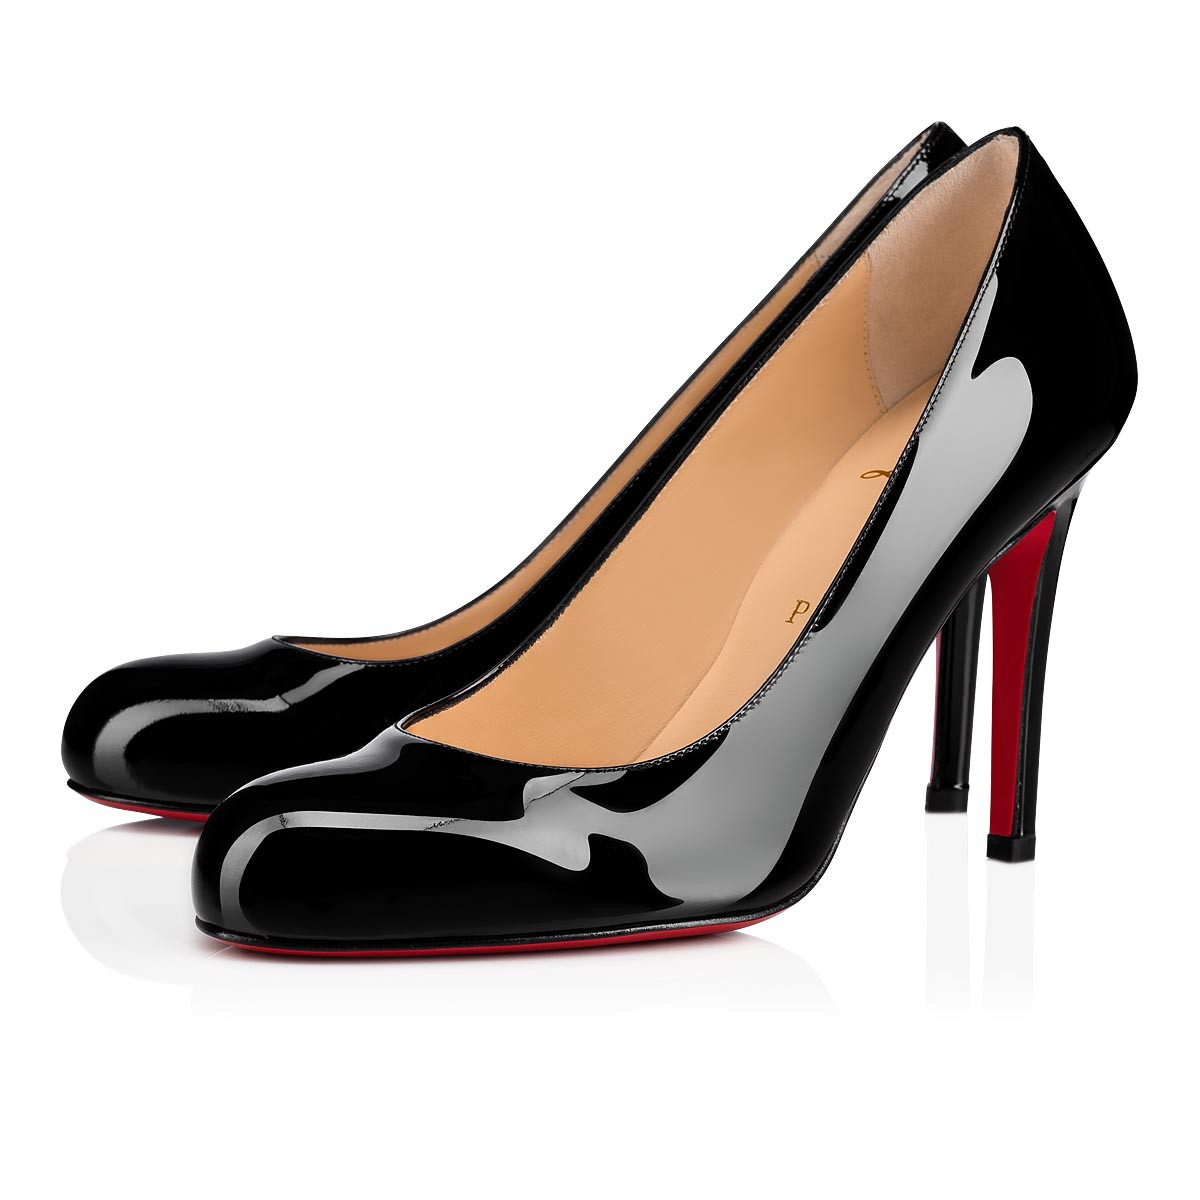 chaussure louboutin femme ete